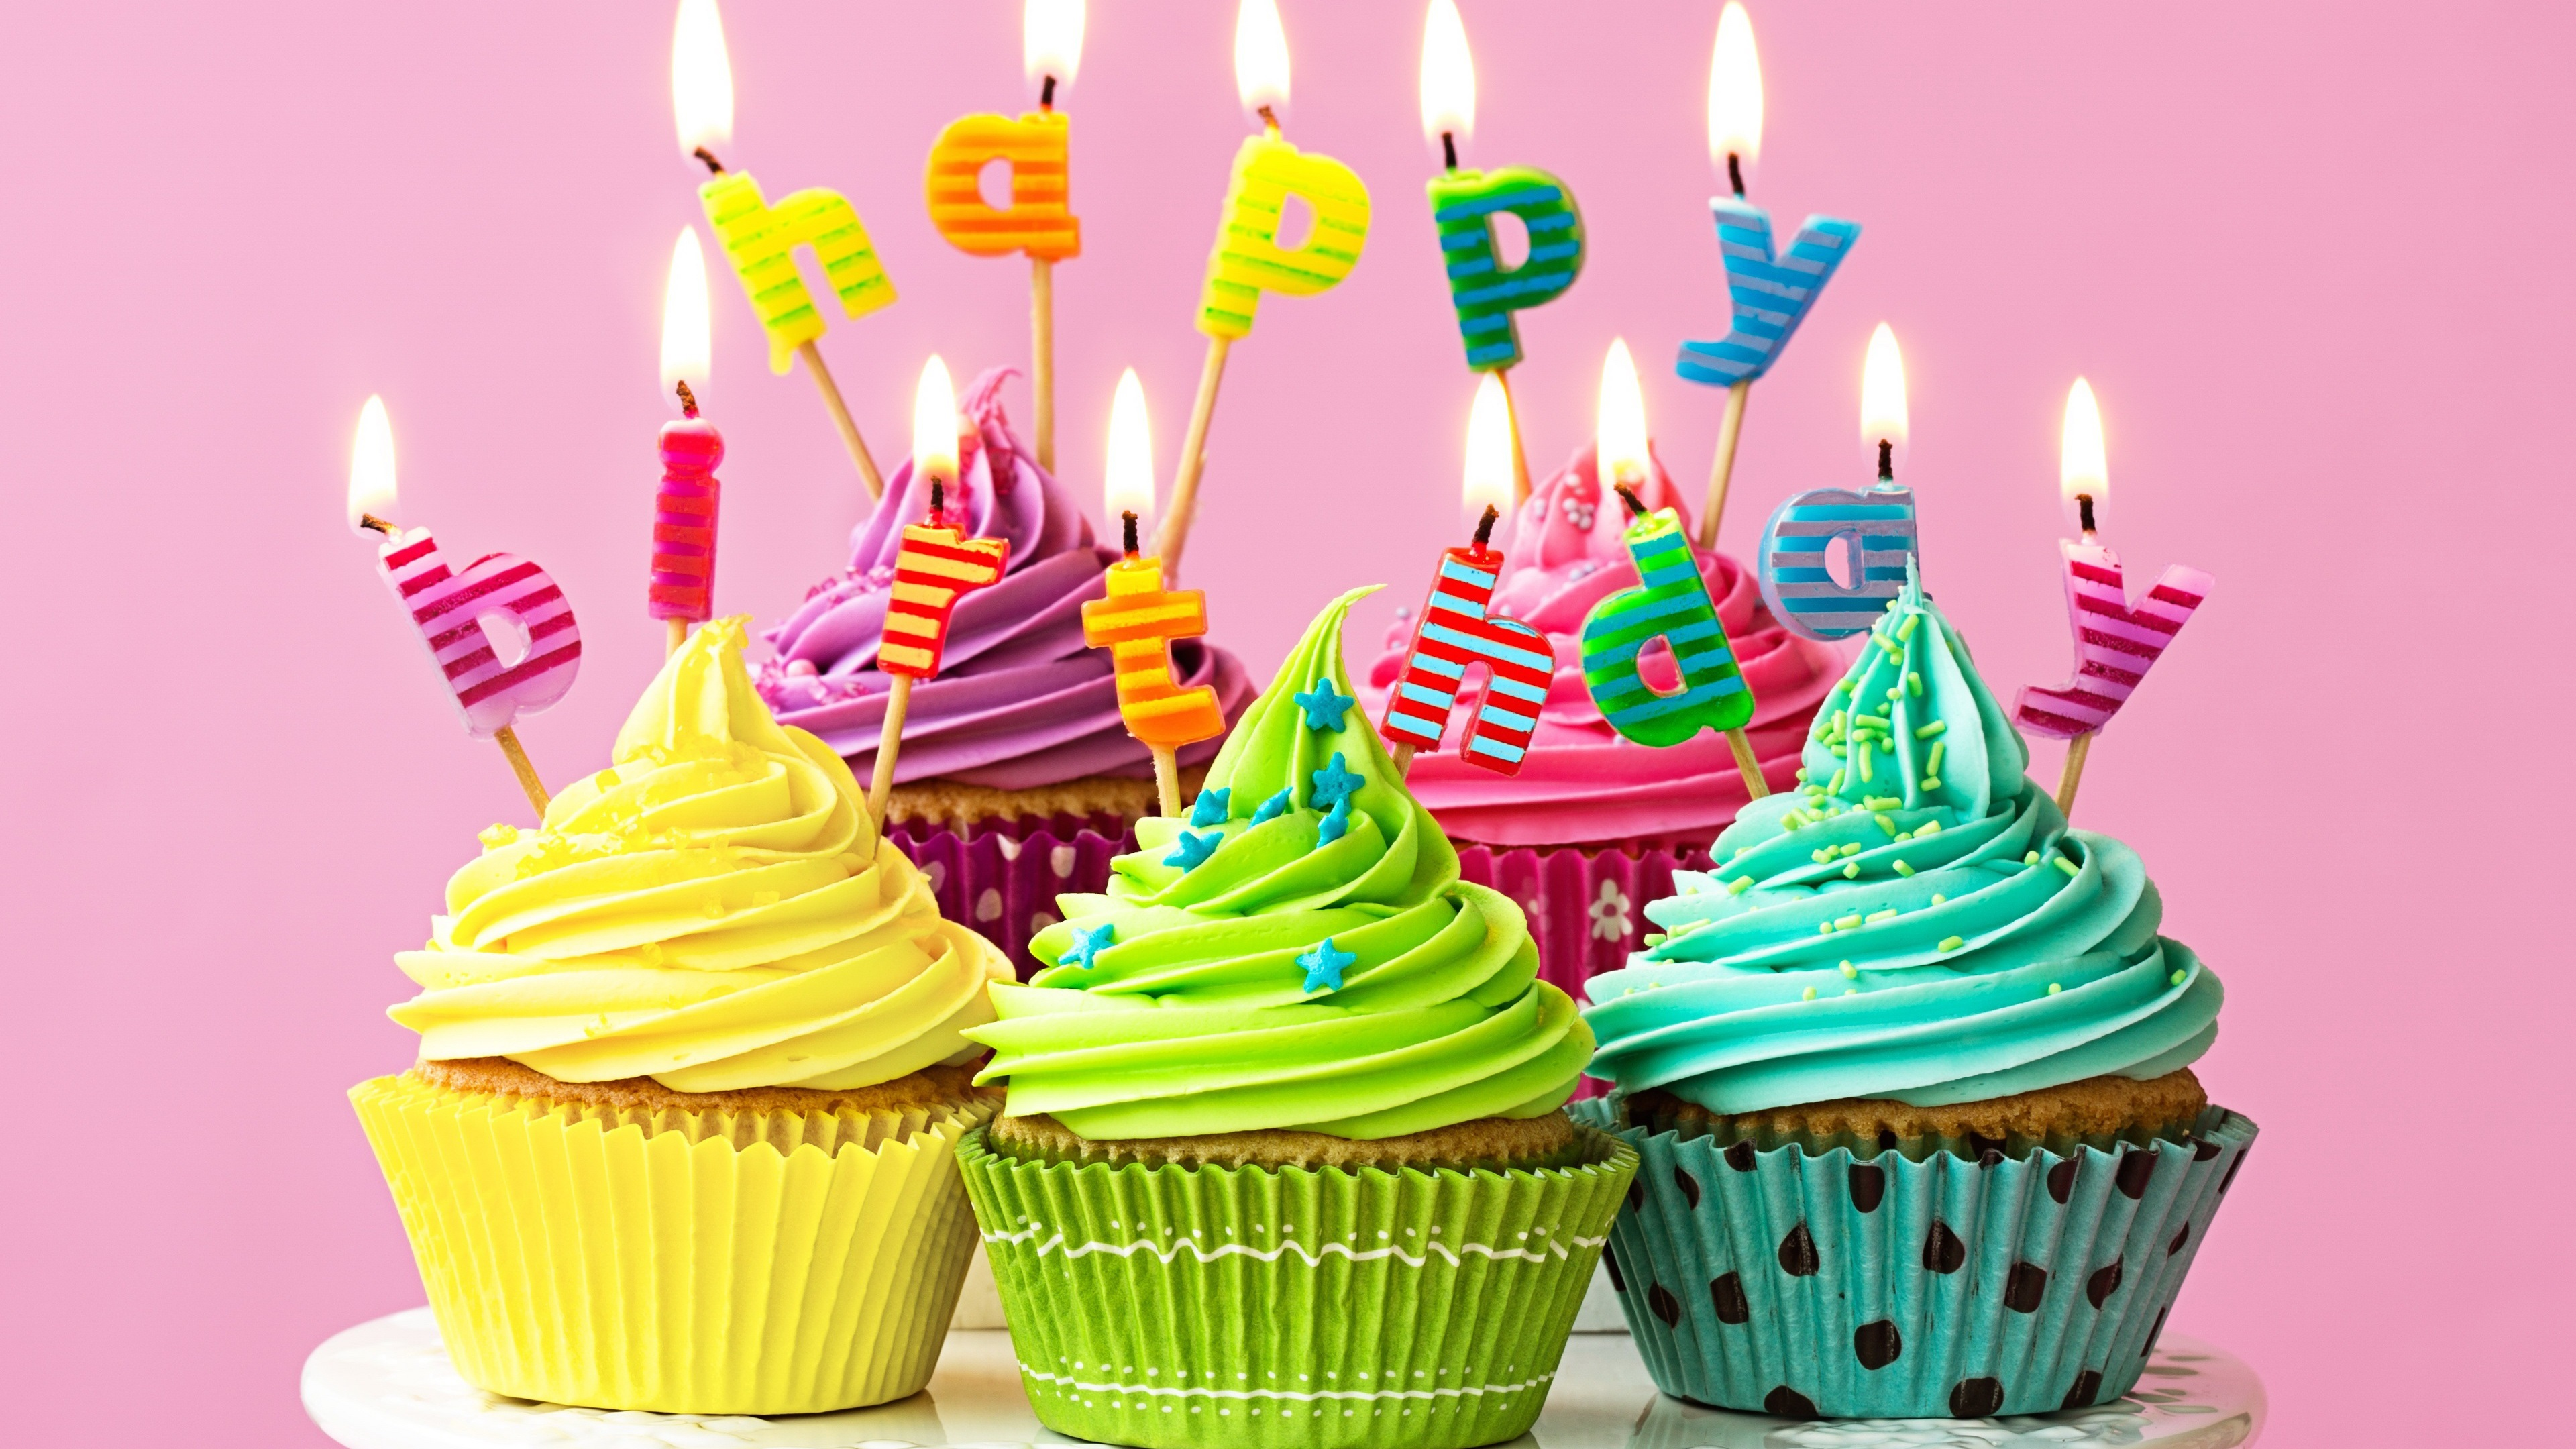 Wallpaper Happy Birthday Candles Fire Colorful Cupcakes 3840x2160